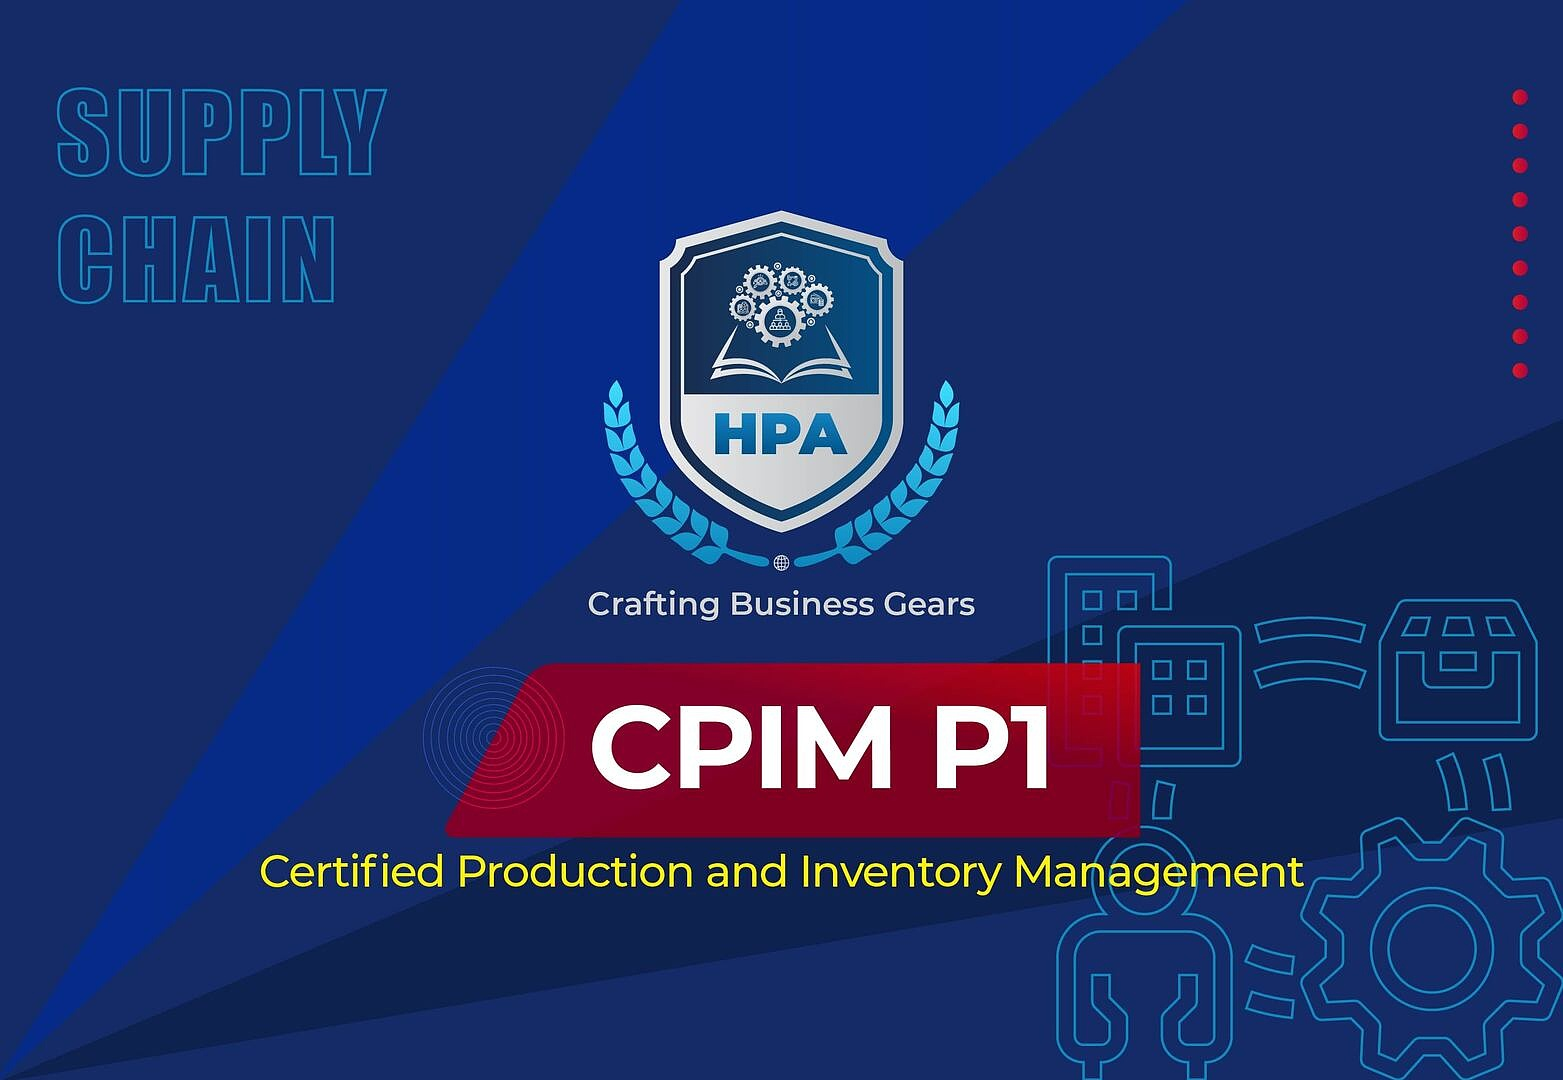 Certified Production and Inventory Management